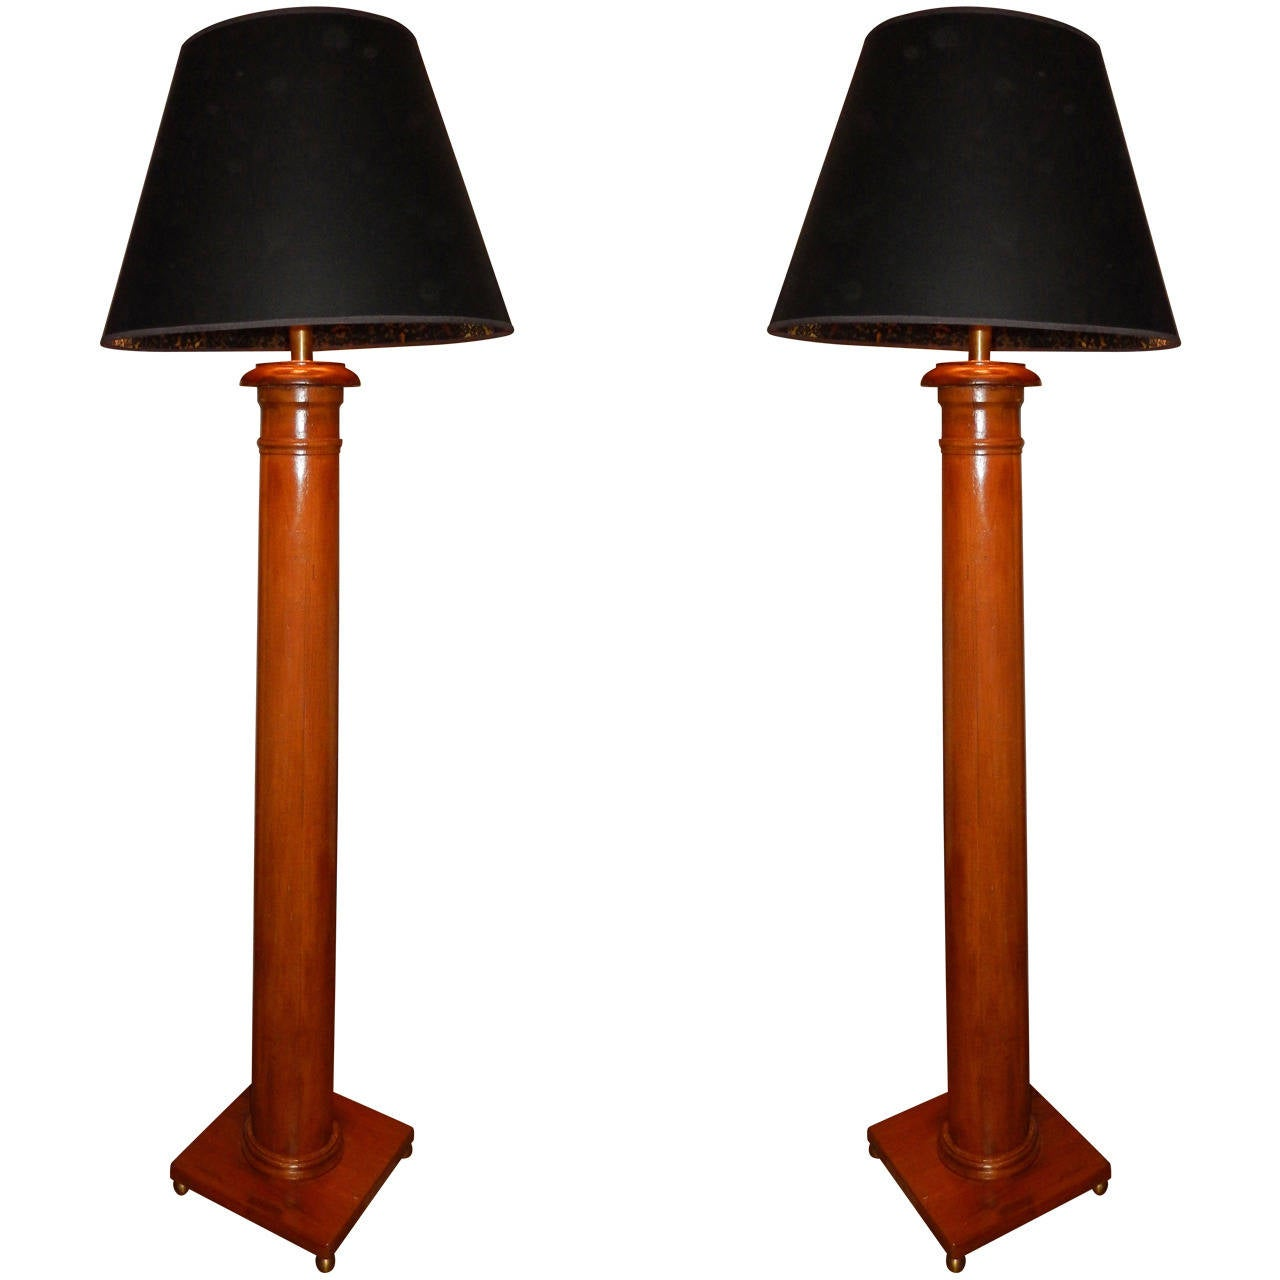 Pair of tall column floor lamps at 1stdibs for Floor pillars